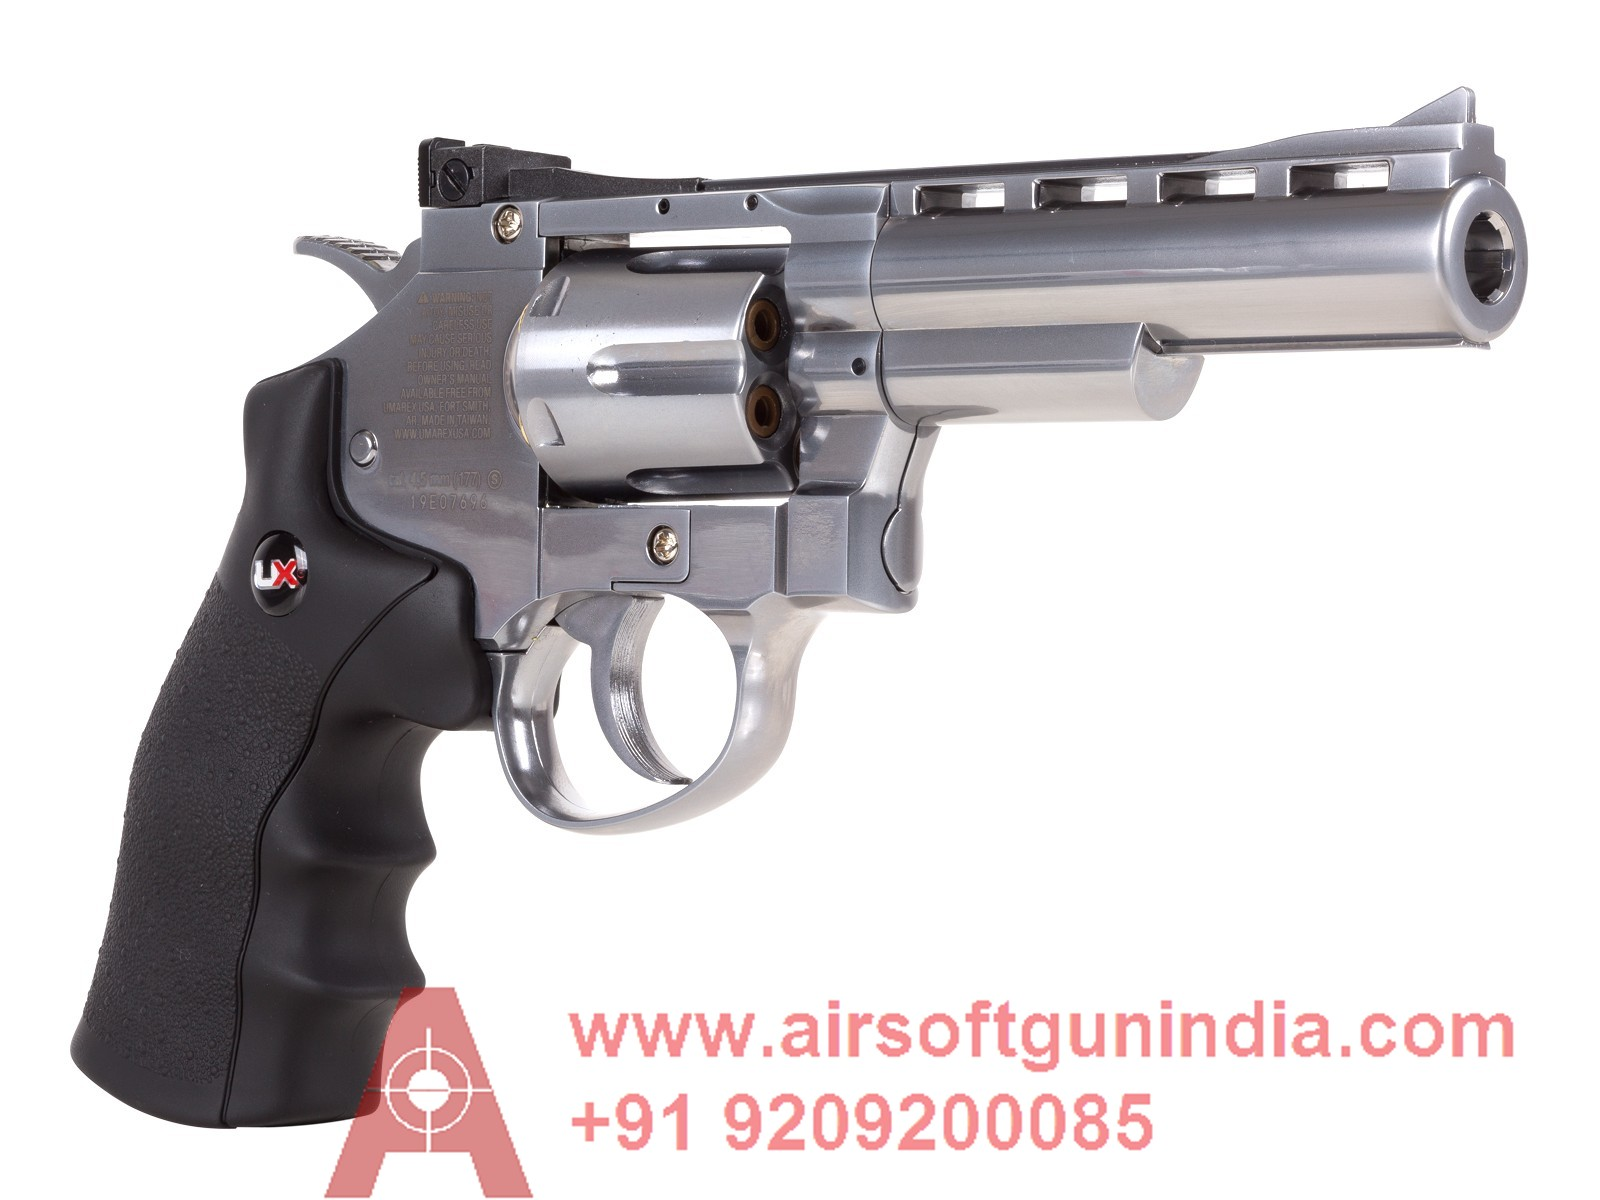 UMAREX UX357 CO2 METAL BB REVOLVER By Airsoft Gun India